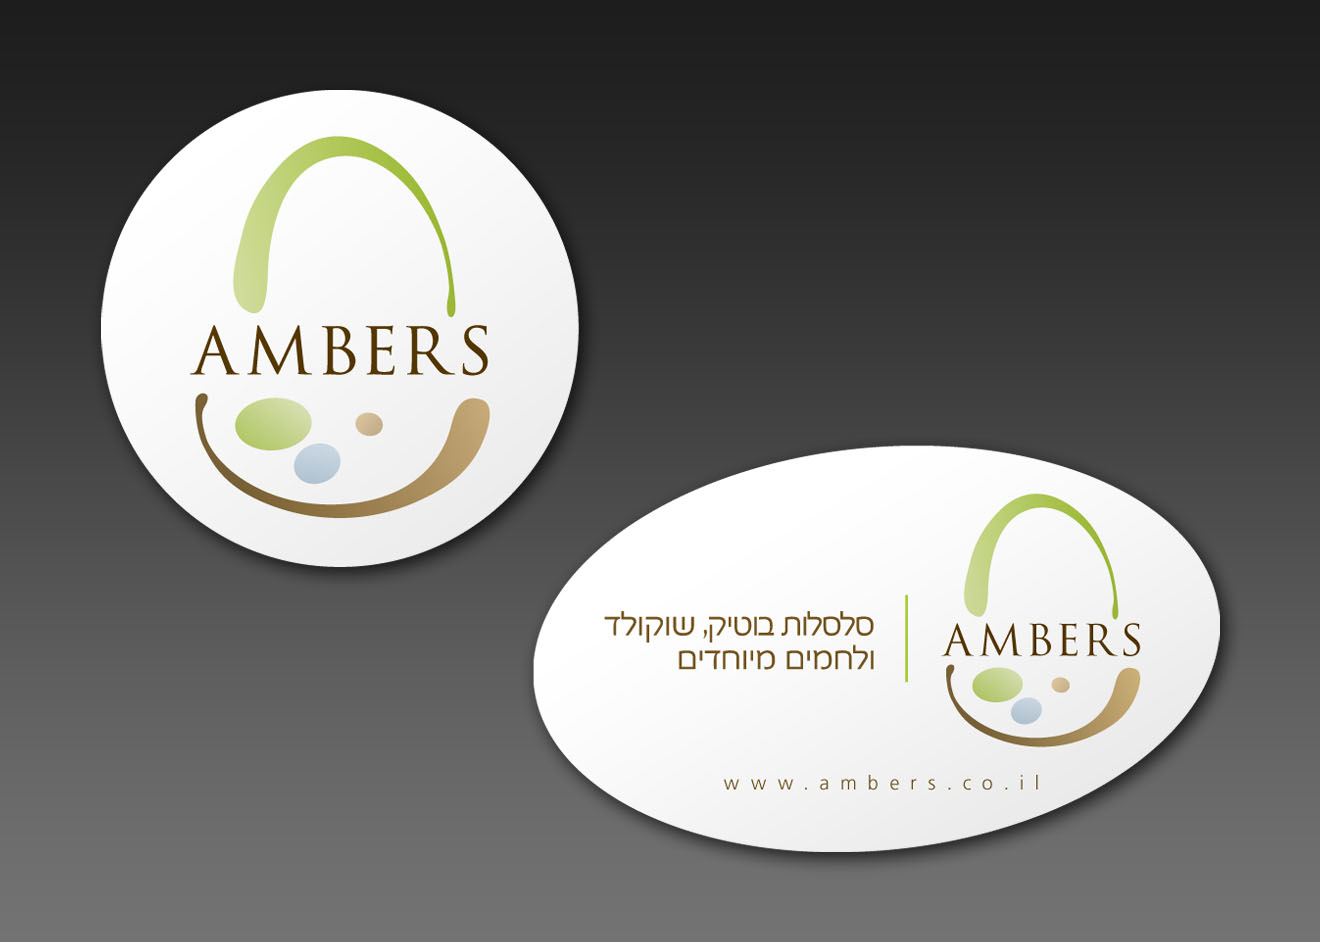 Ambers_brand__0001_Stickers